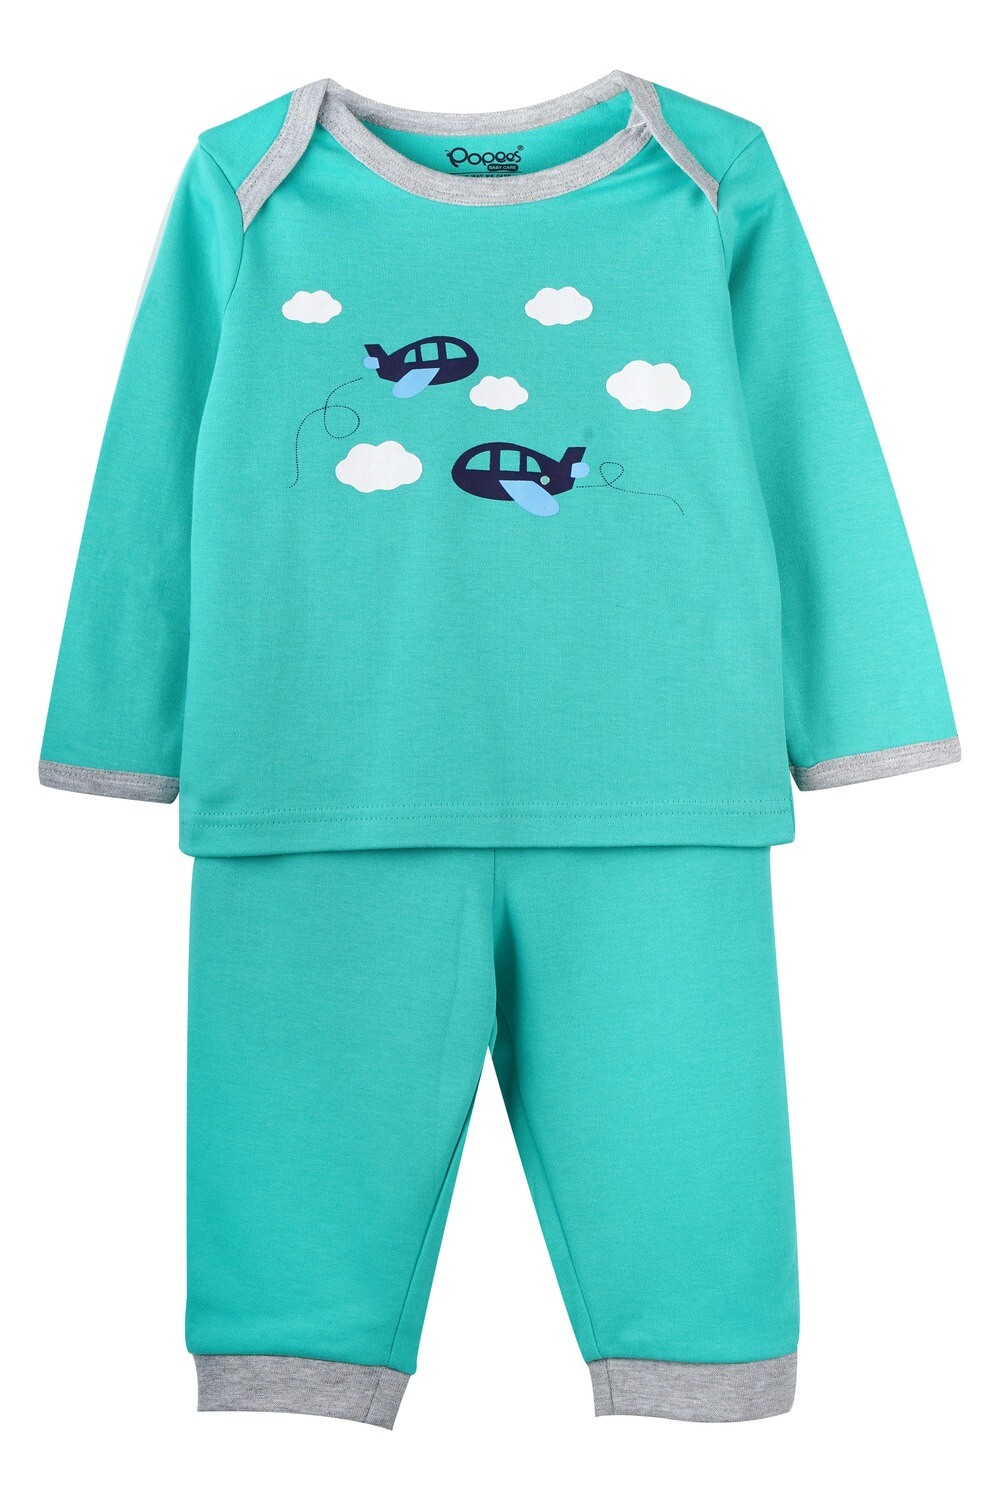 KEDRICK WATER FALL Full Sleeve Top and Pant for Baby Boys